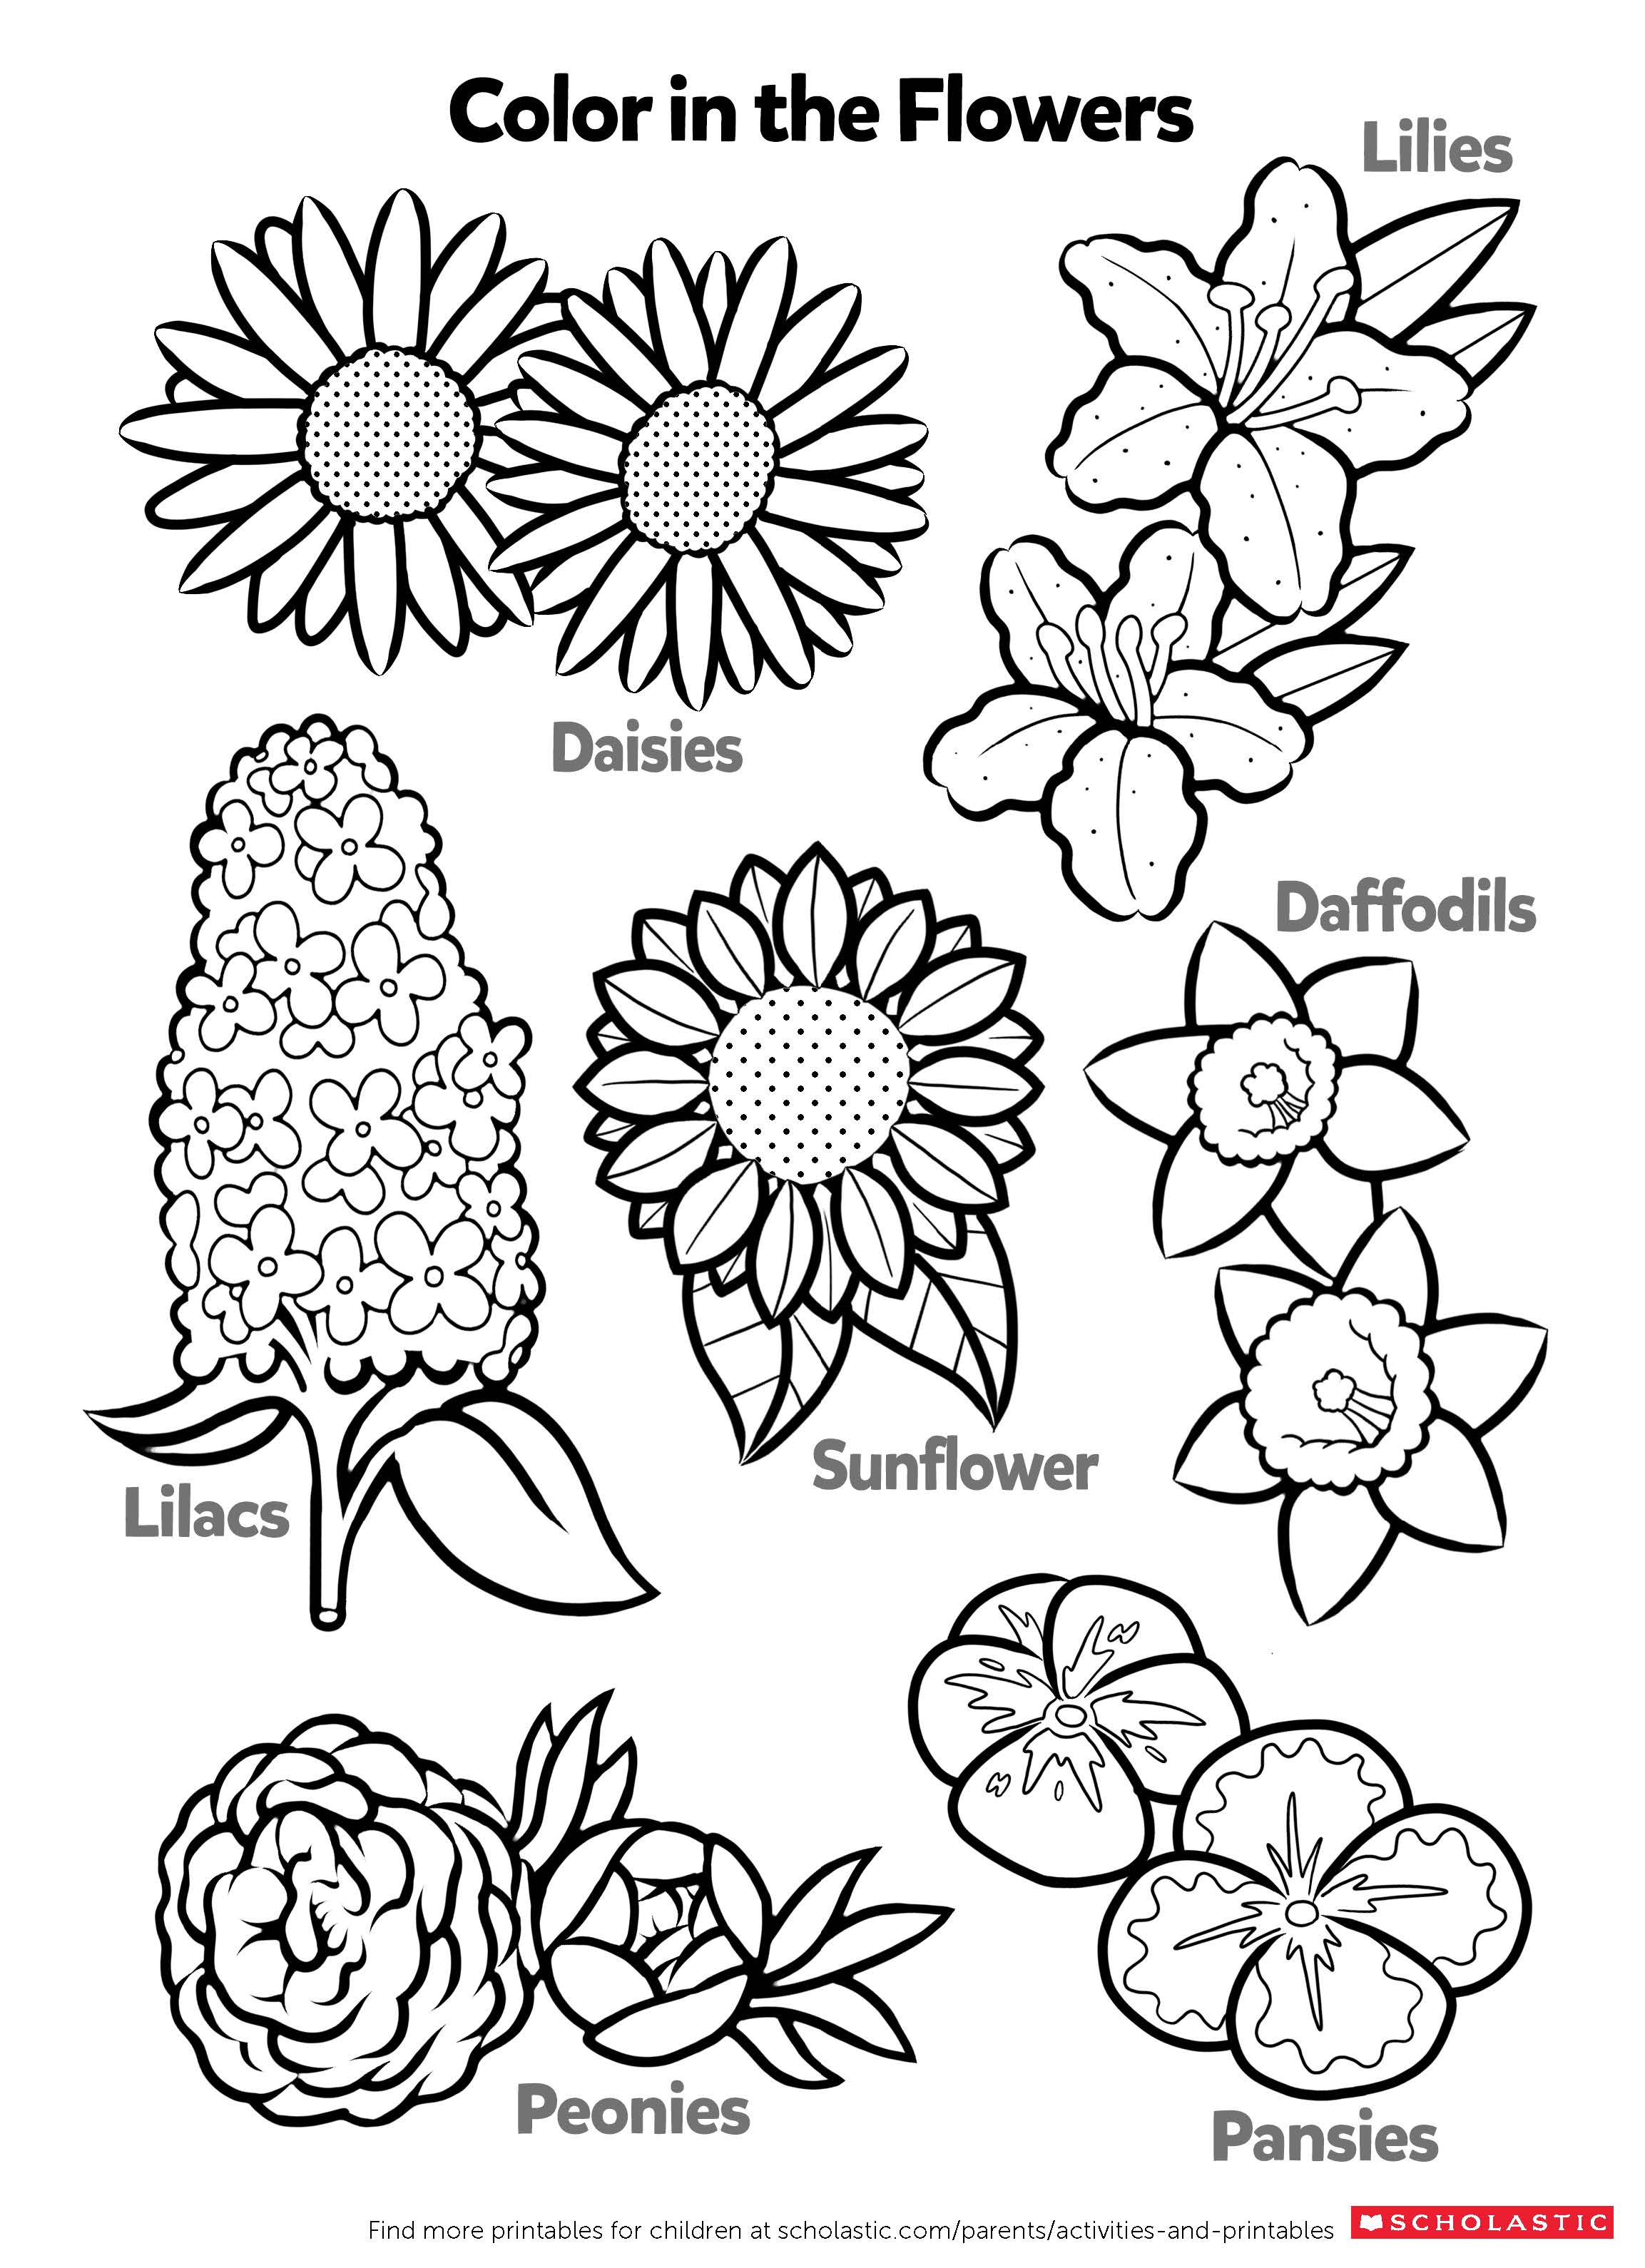 Learn About Flowers By Coloring